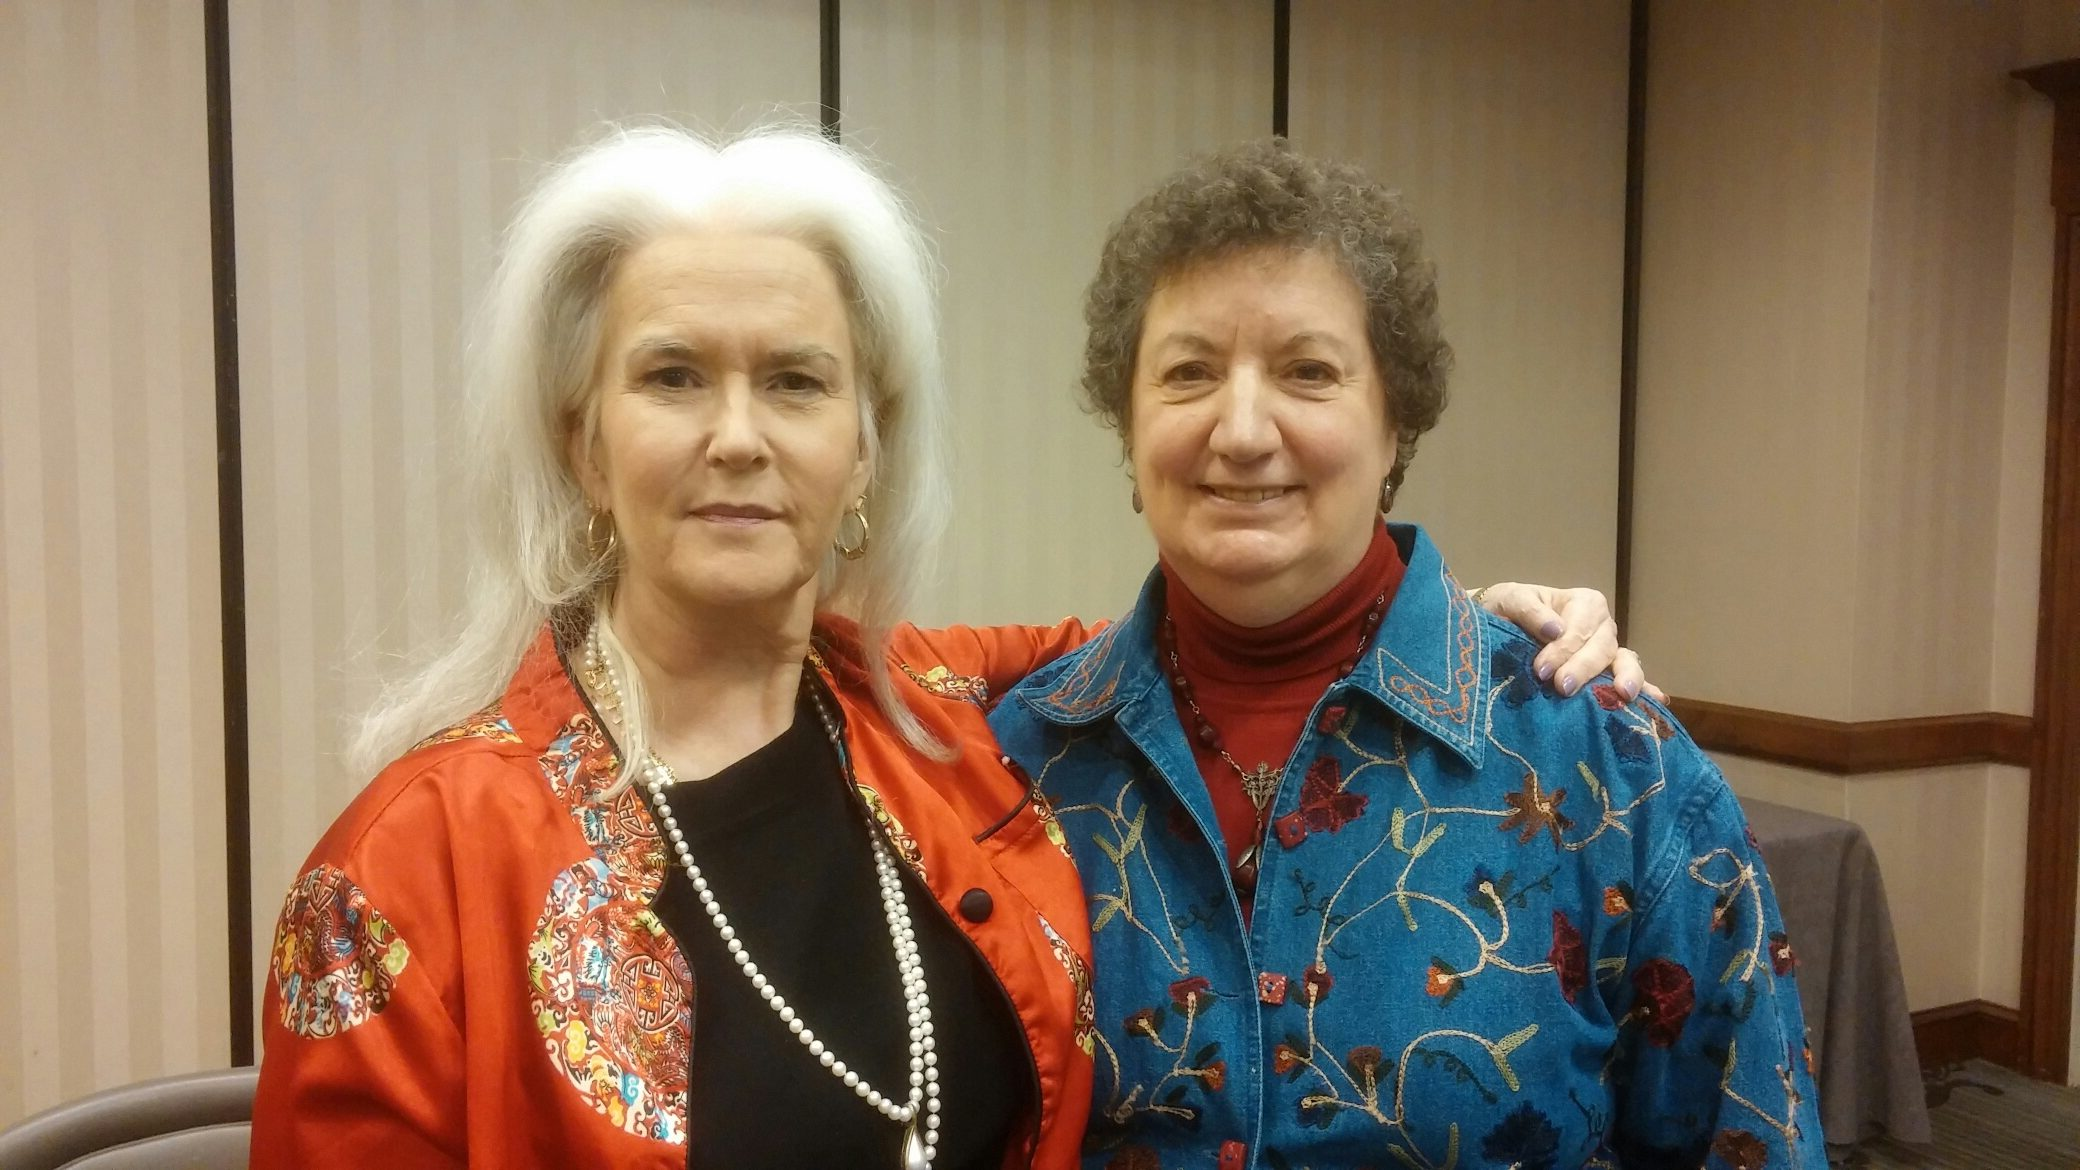 Owner Deanna Brown, woman with short brown hair and Heloise, woman with long white hair